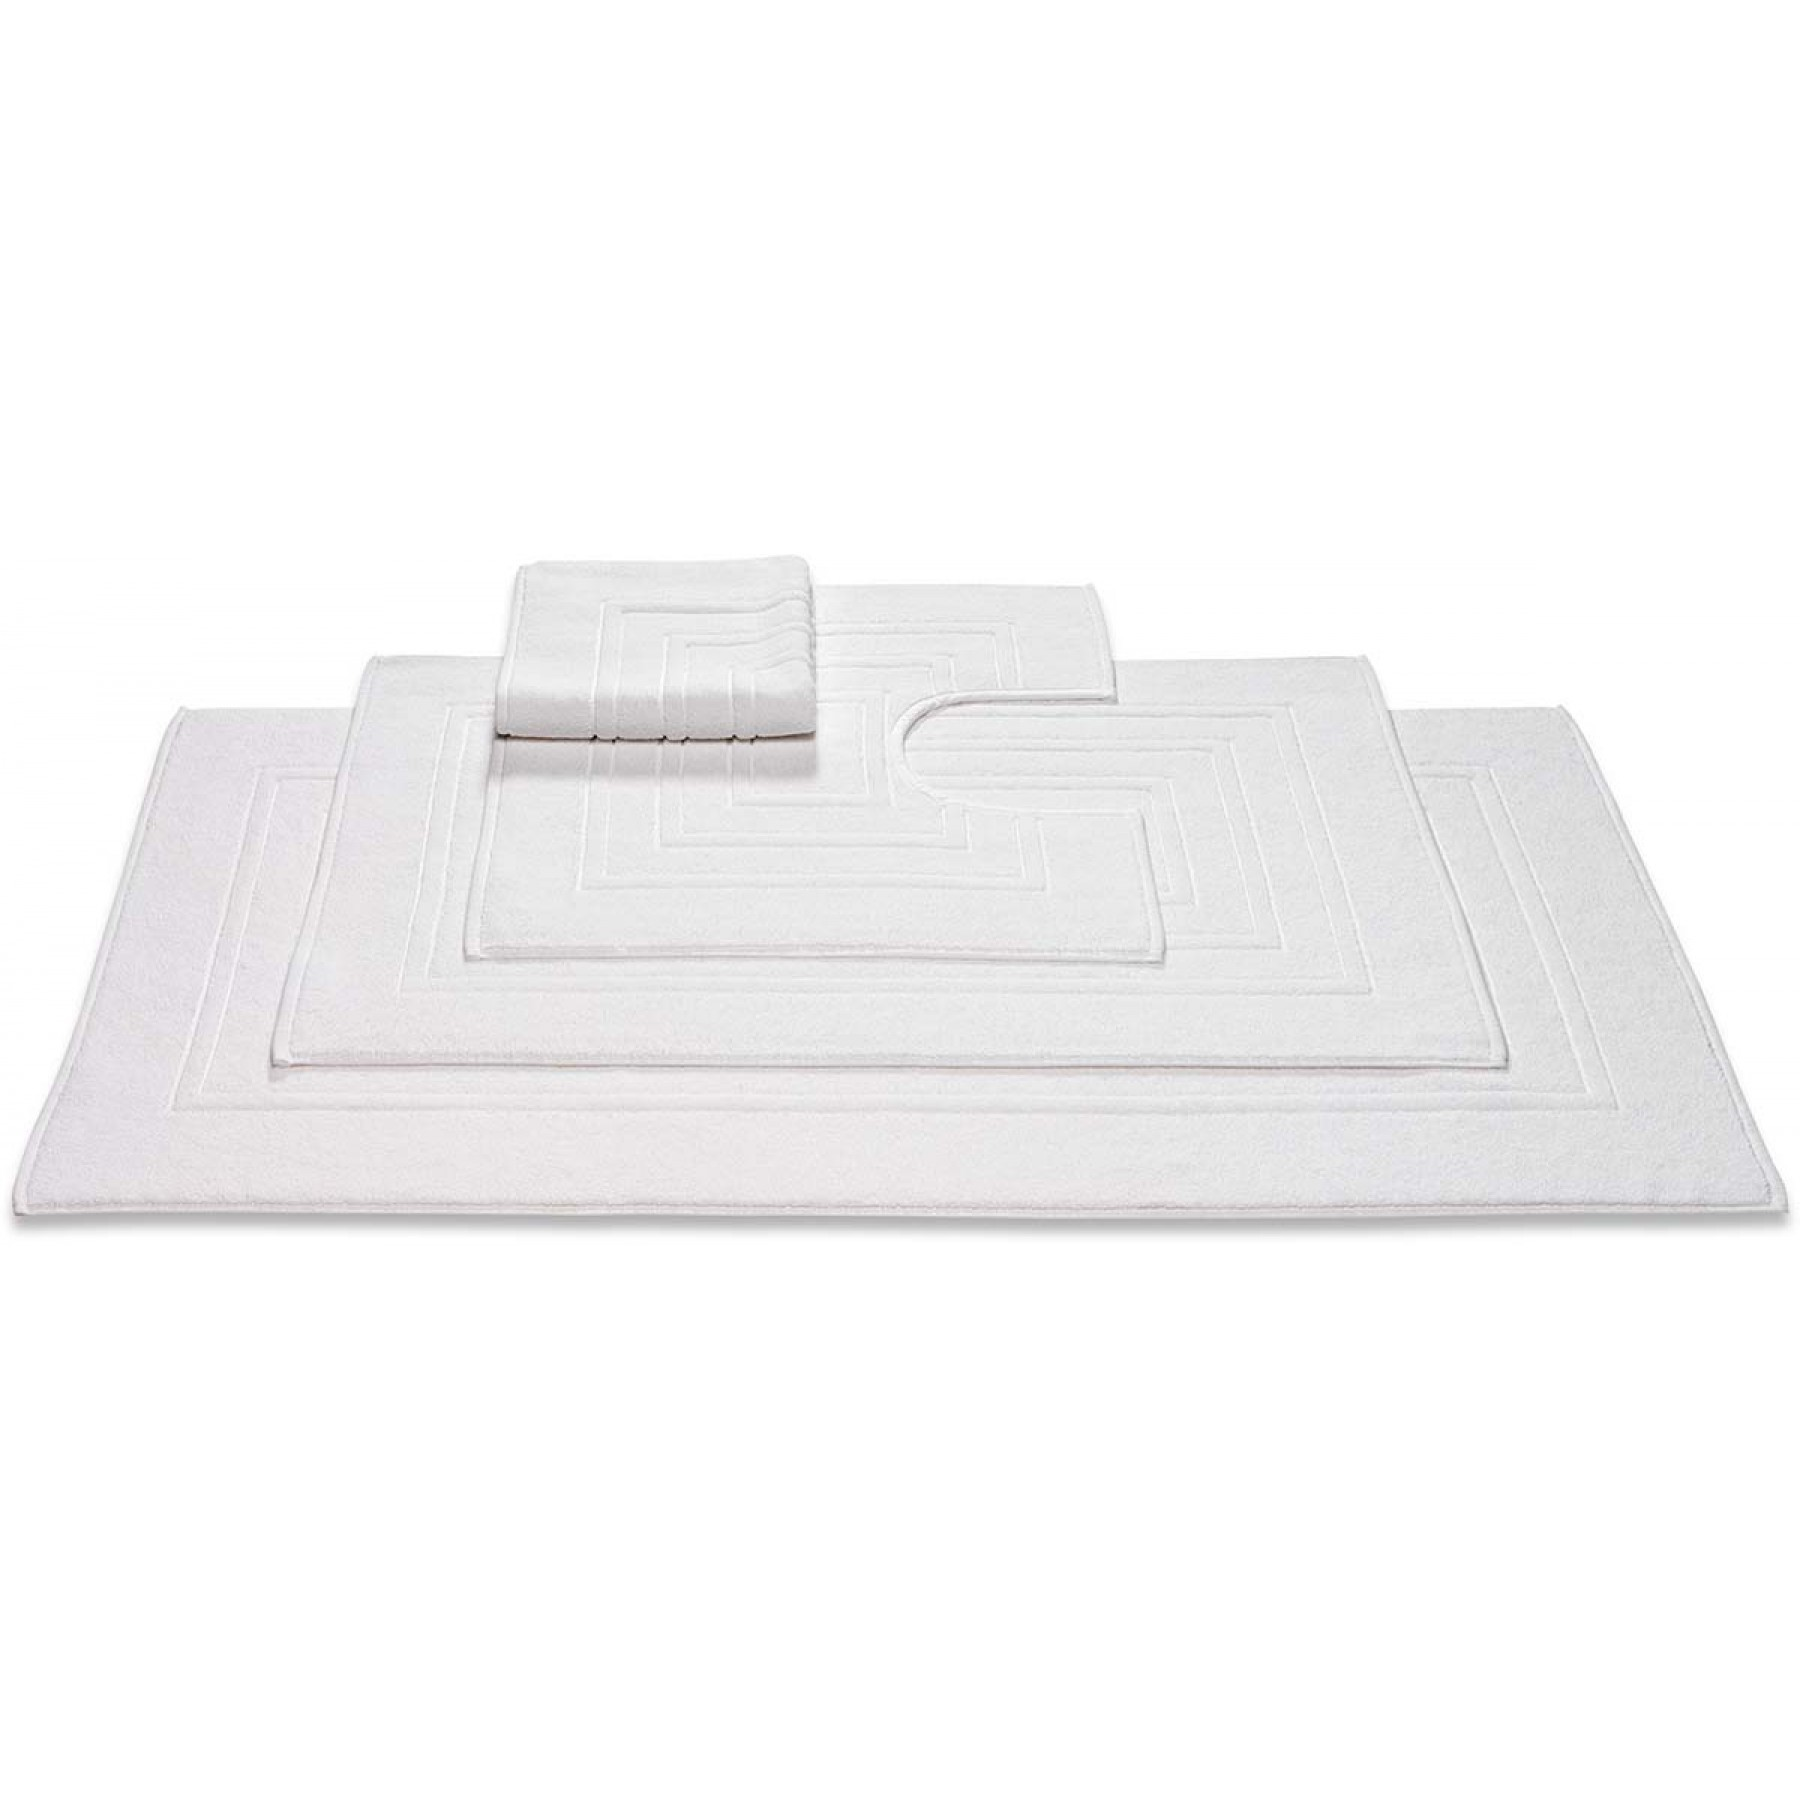 Vandyck Toiletmat Houston White